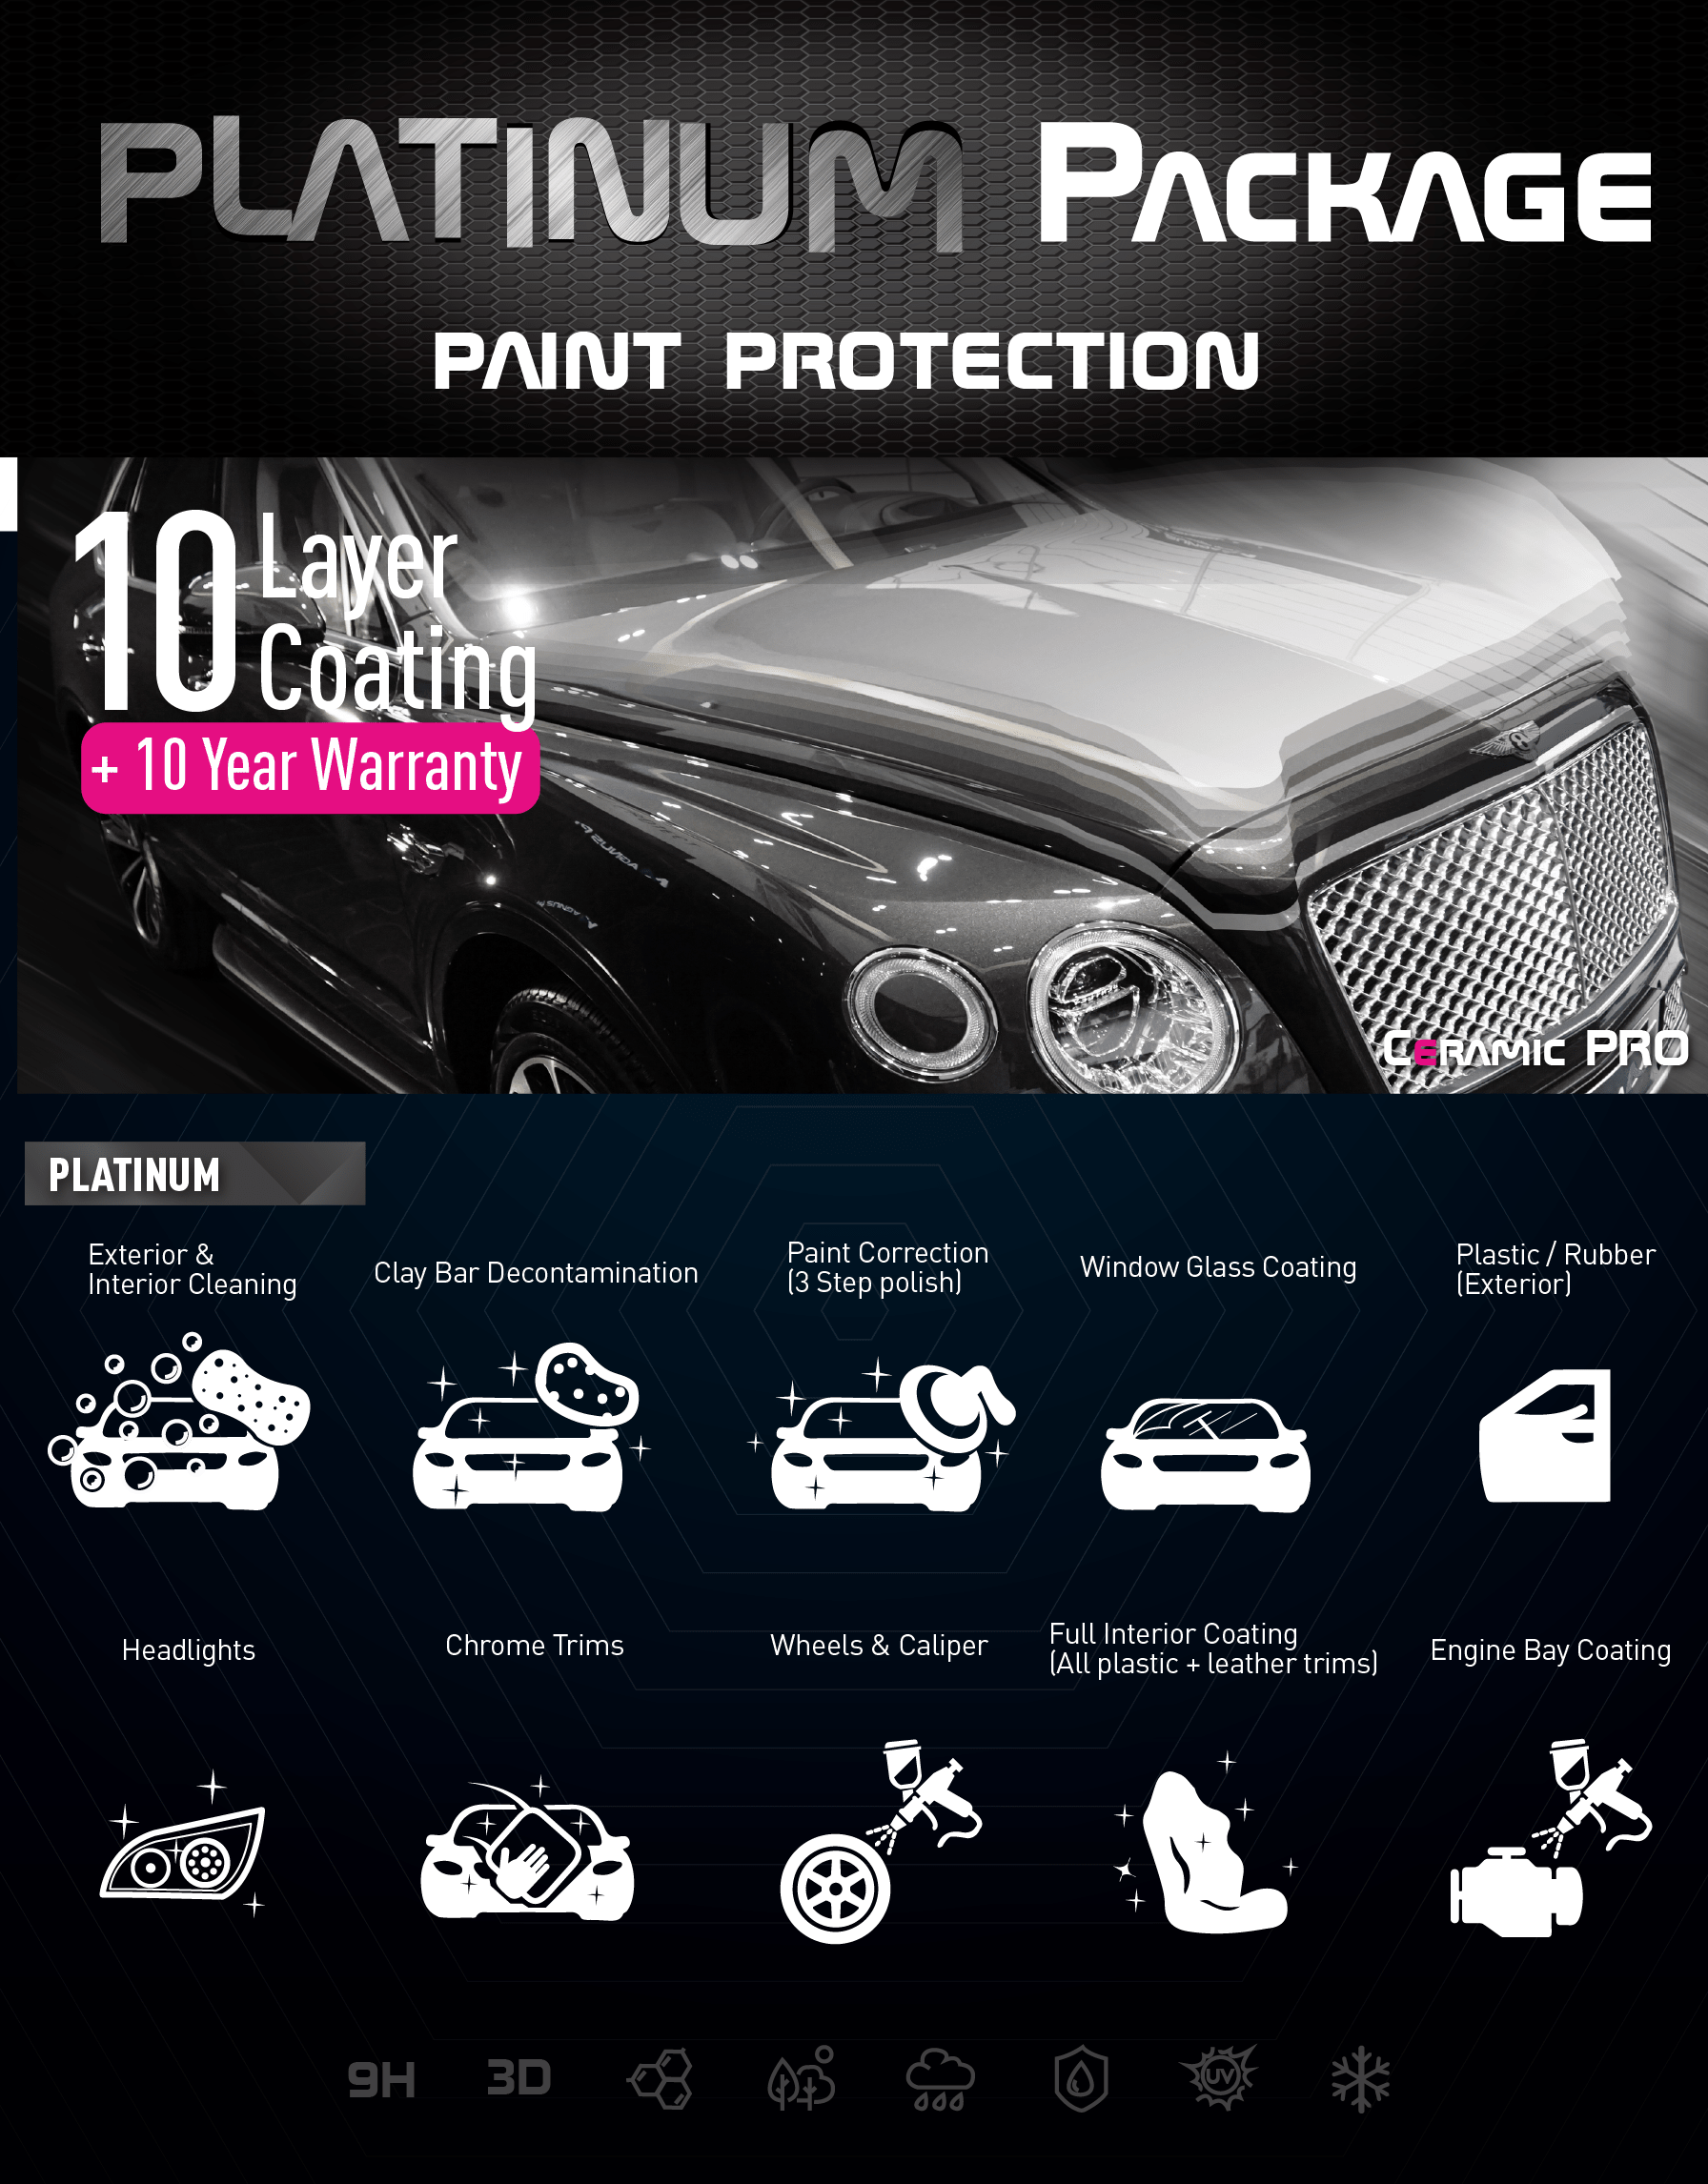 Ceramic Pro Malaysia - Platinum Package Paint Protection